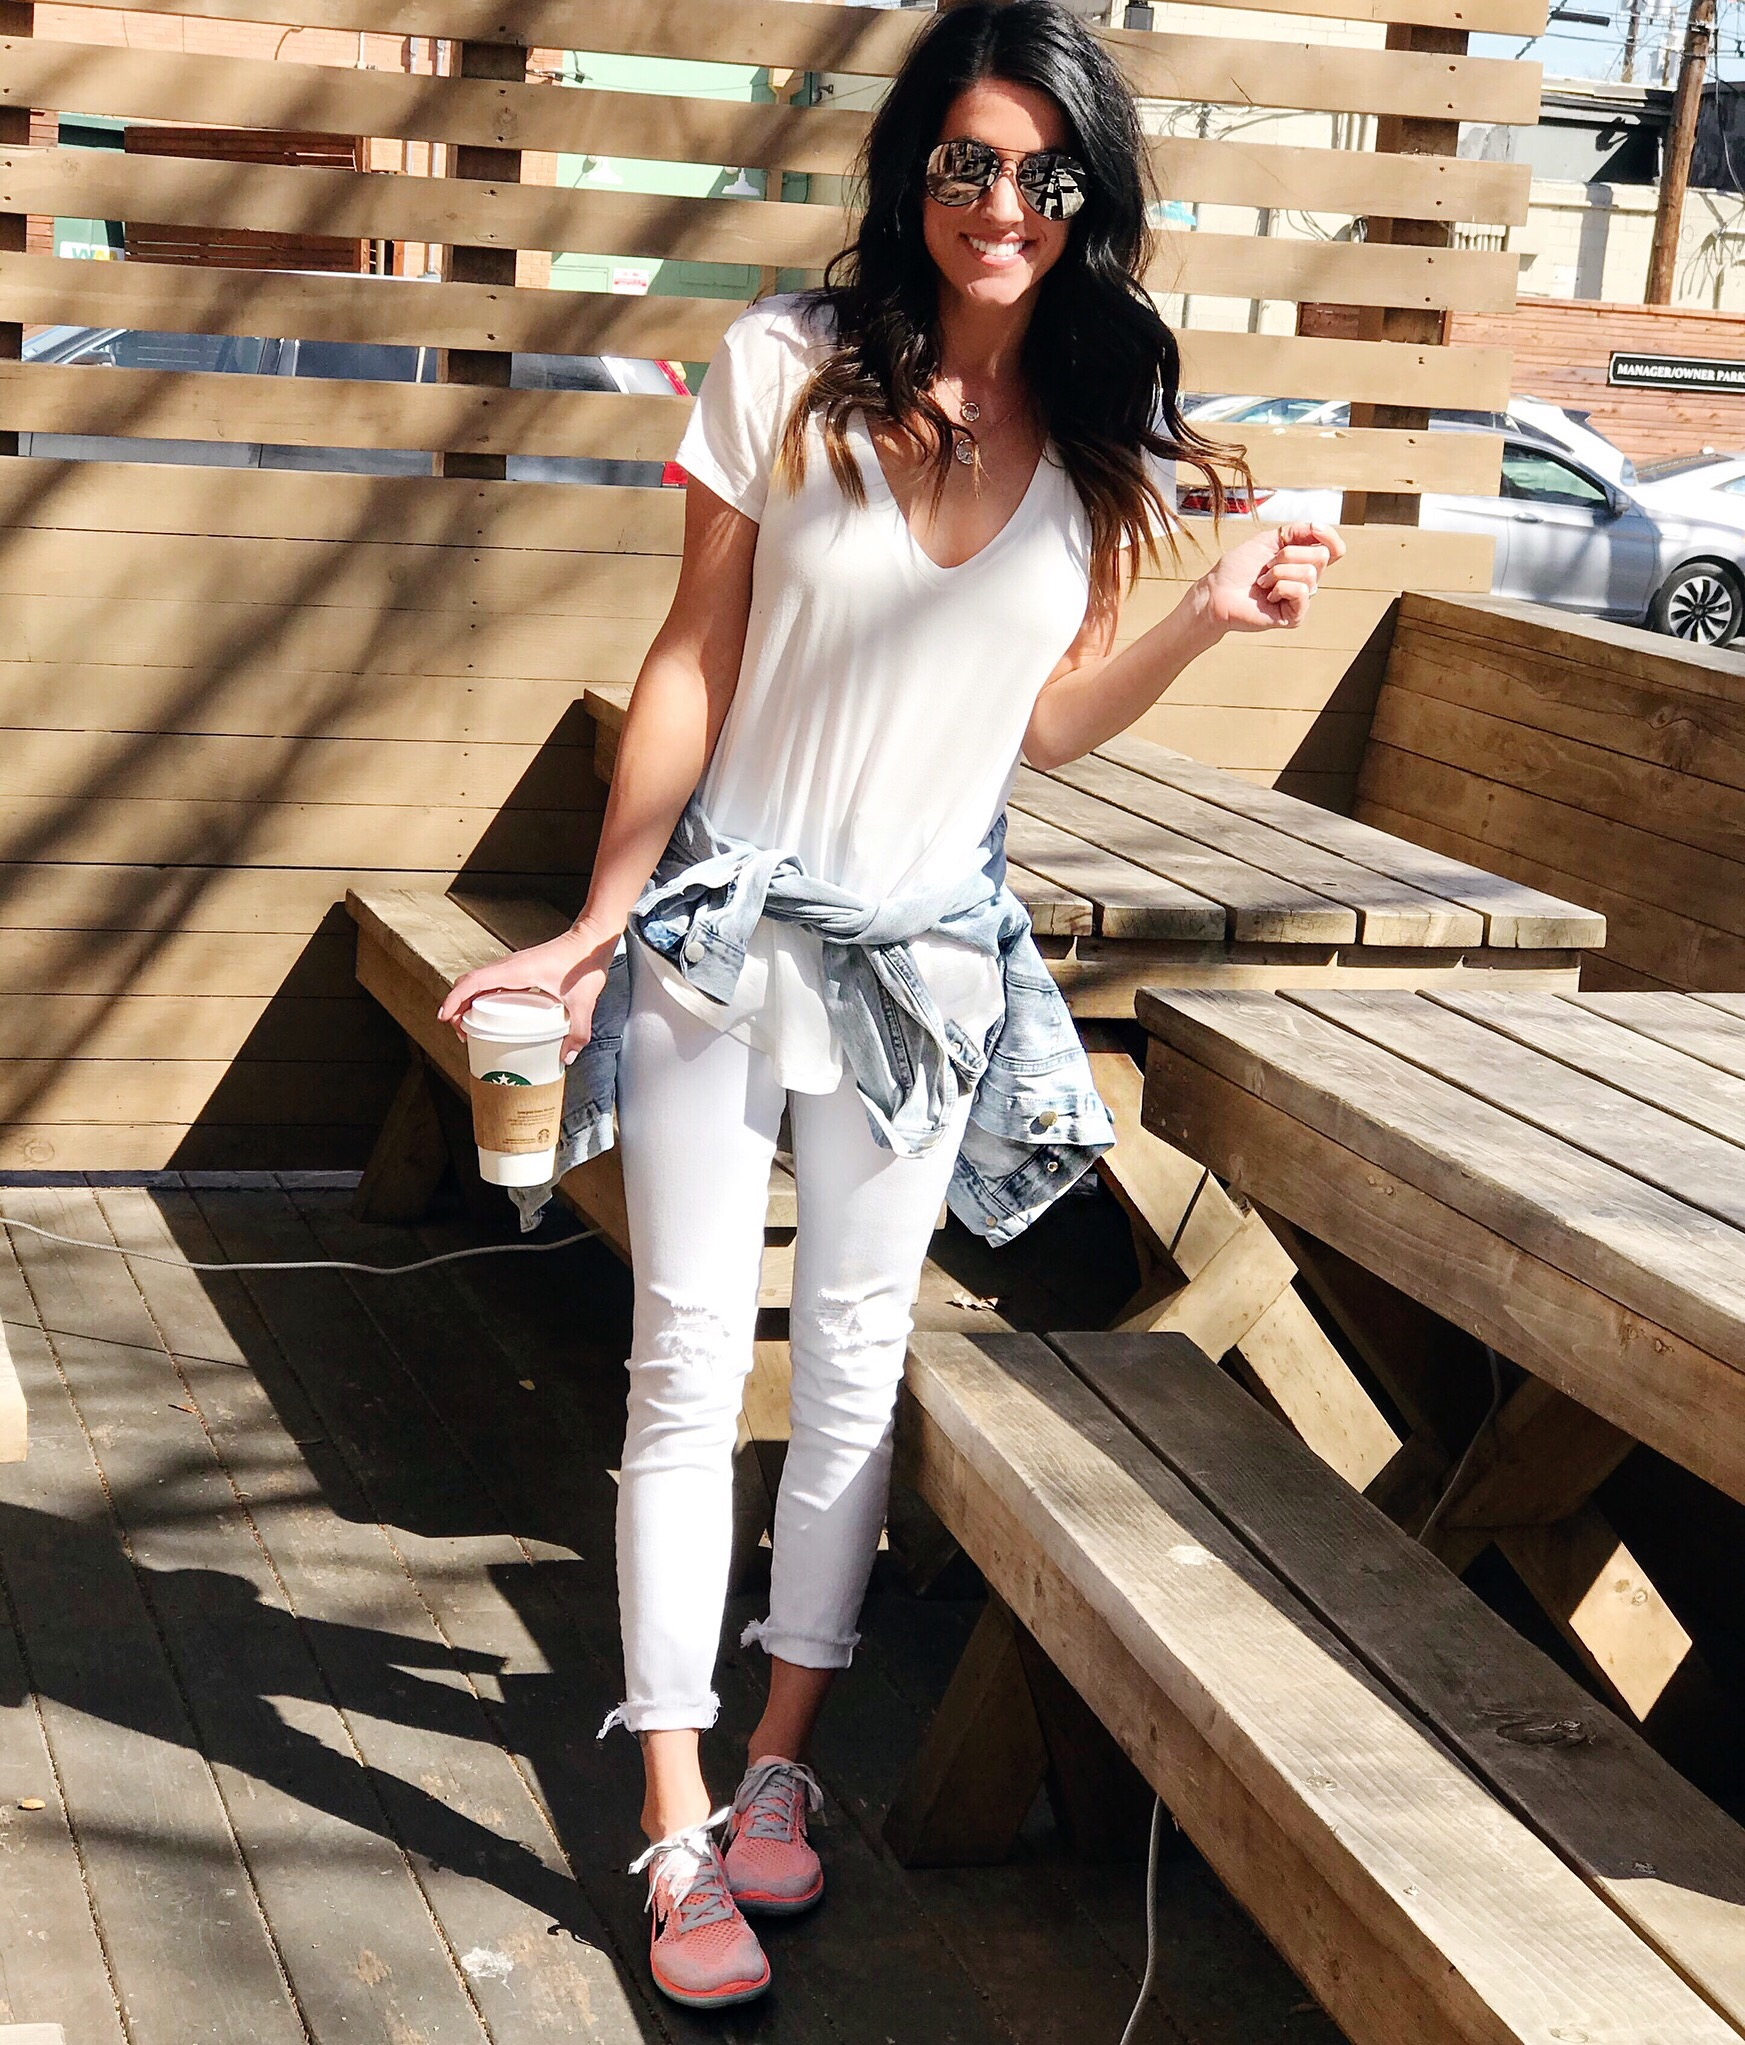 White Jeans outfit, sneakers, casual style